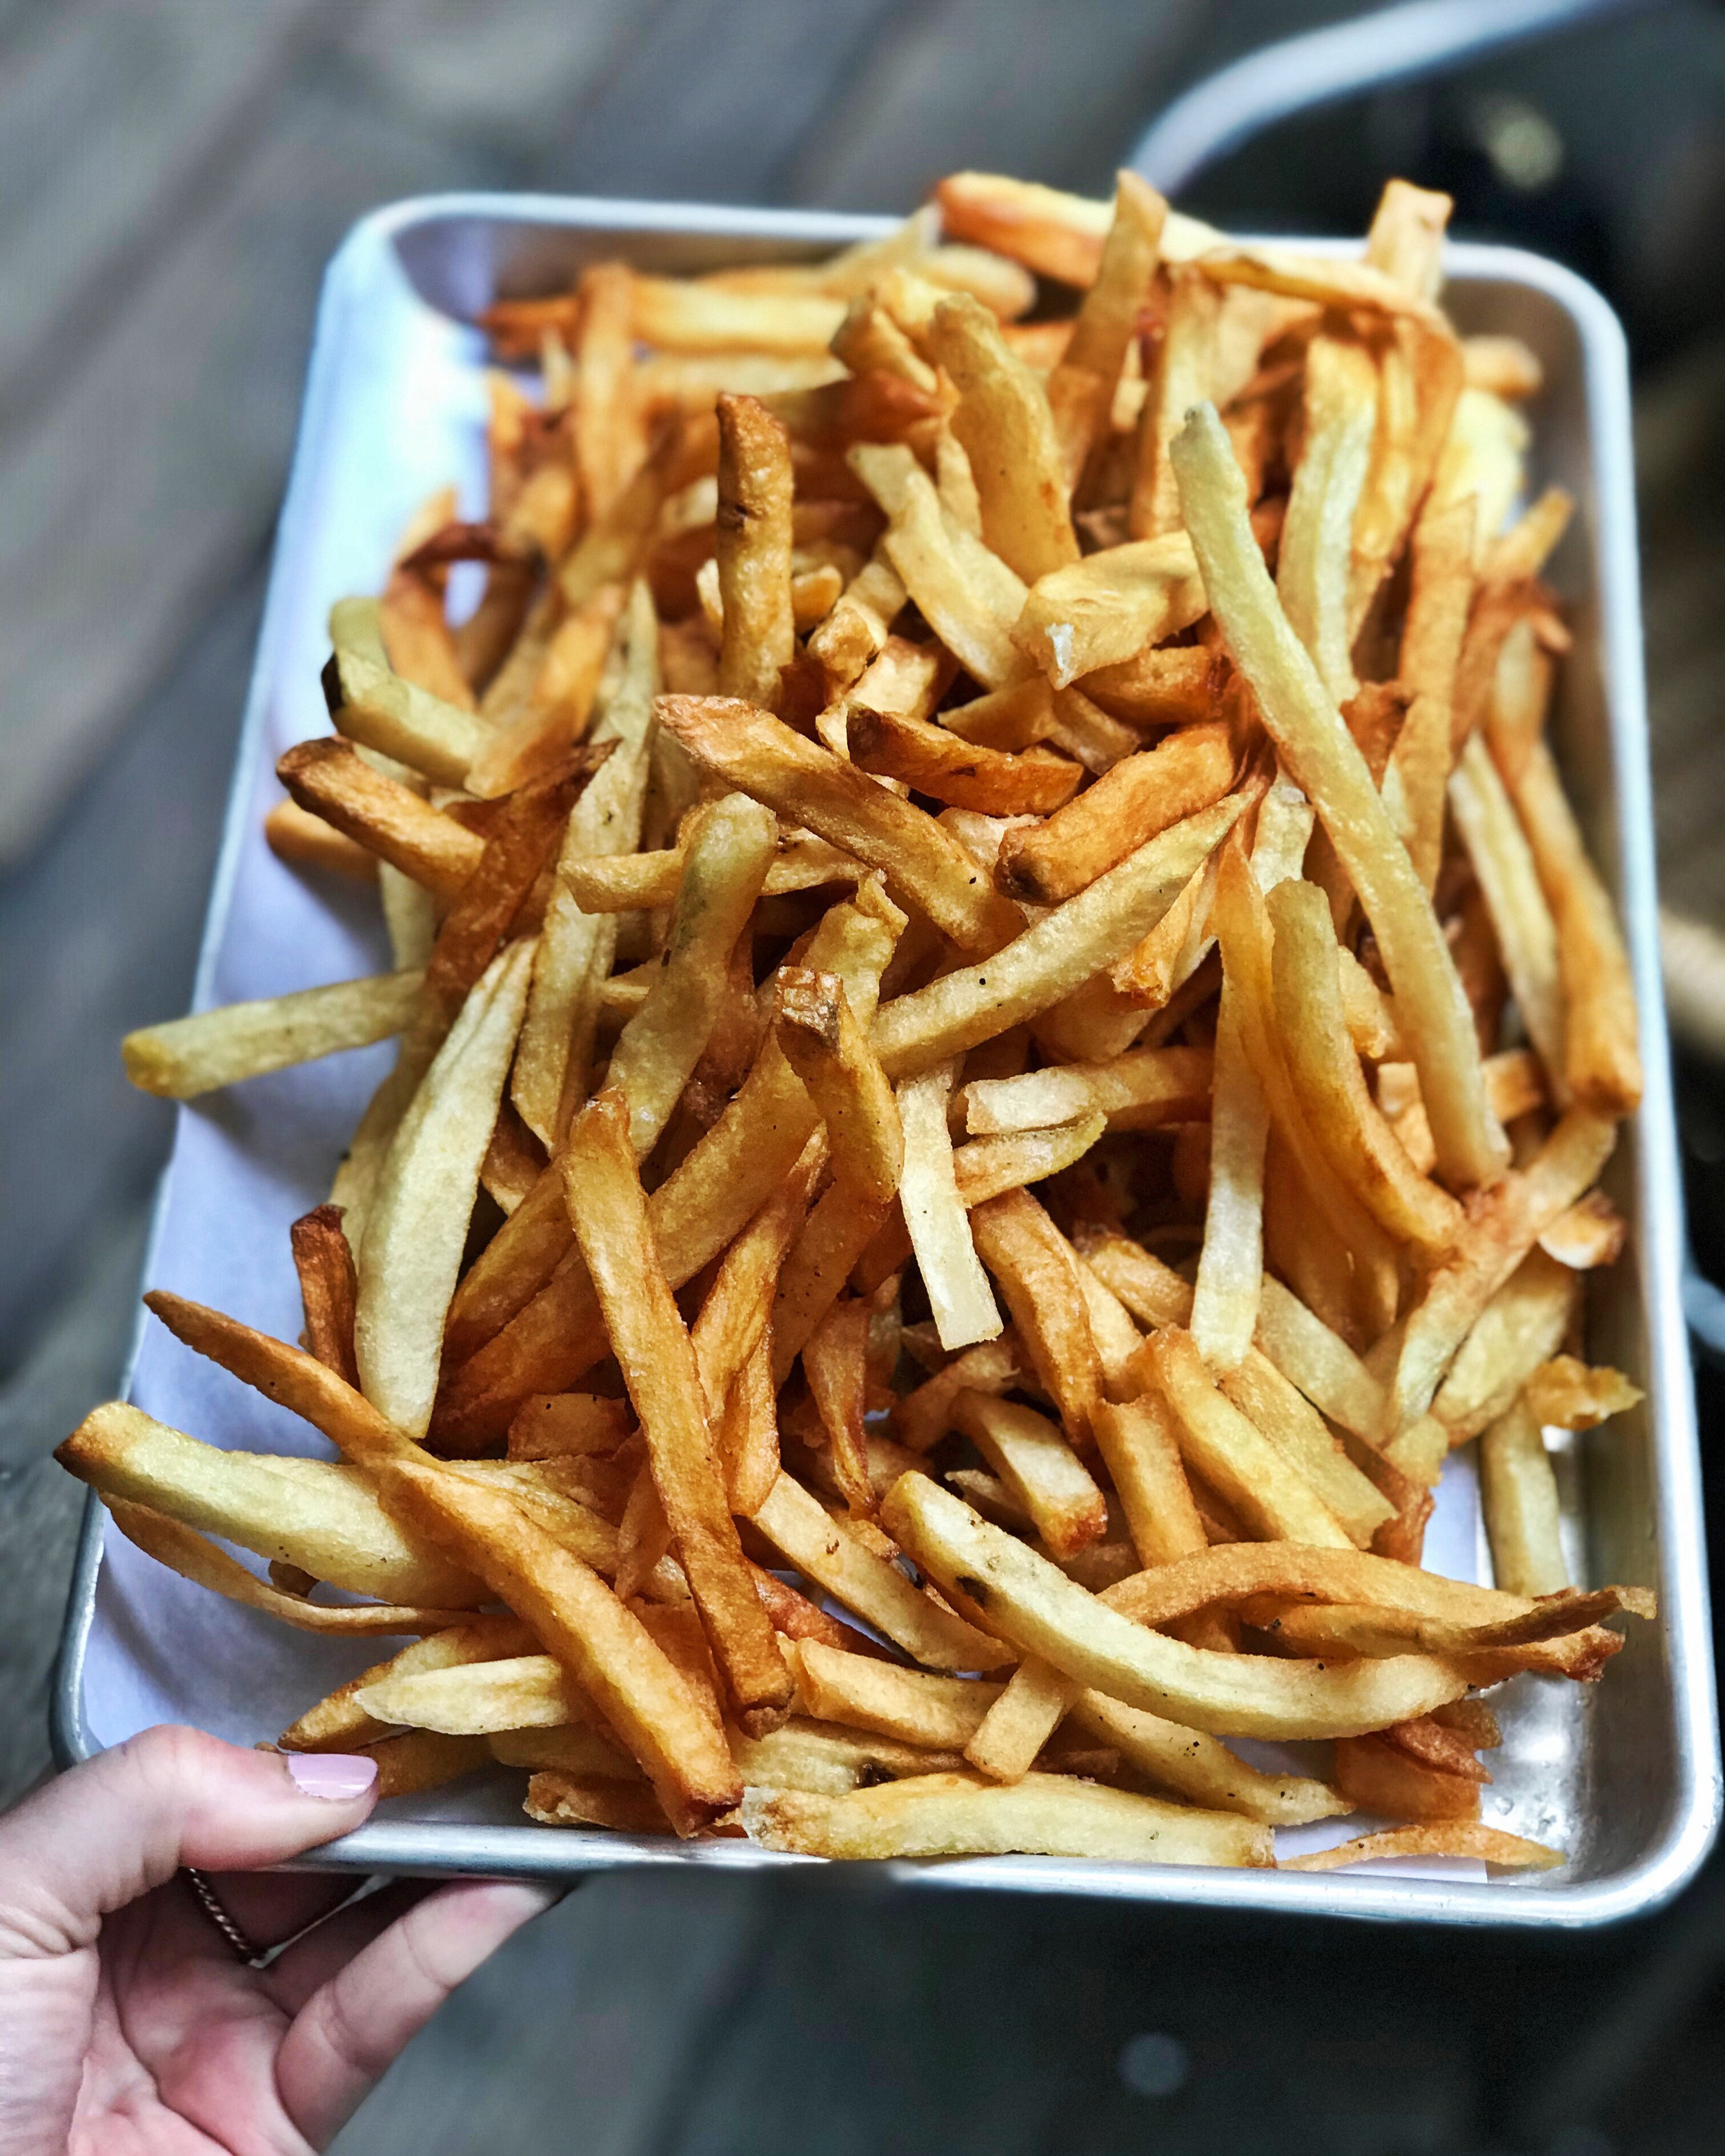 royale fries pic.jpg